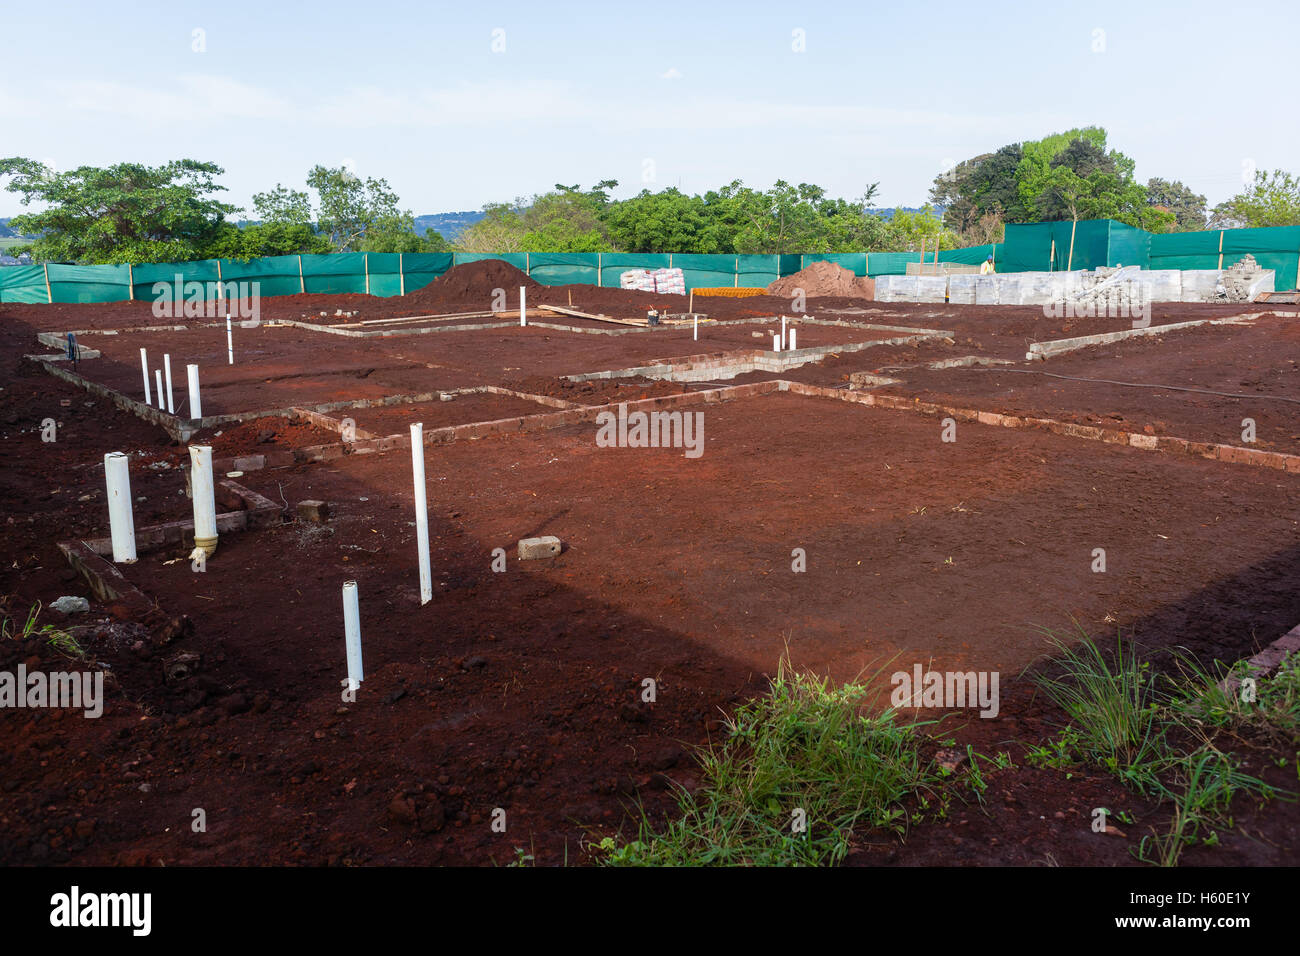 House Building Construction Foundations Layout Brickwork New Home In Progress